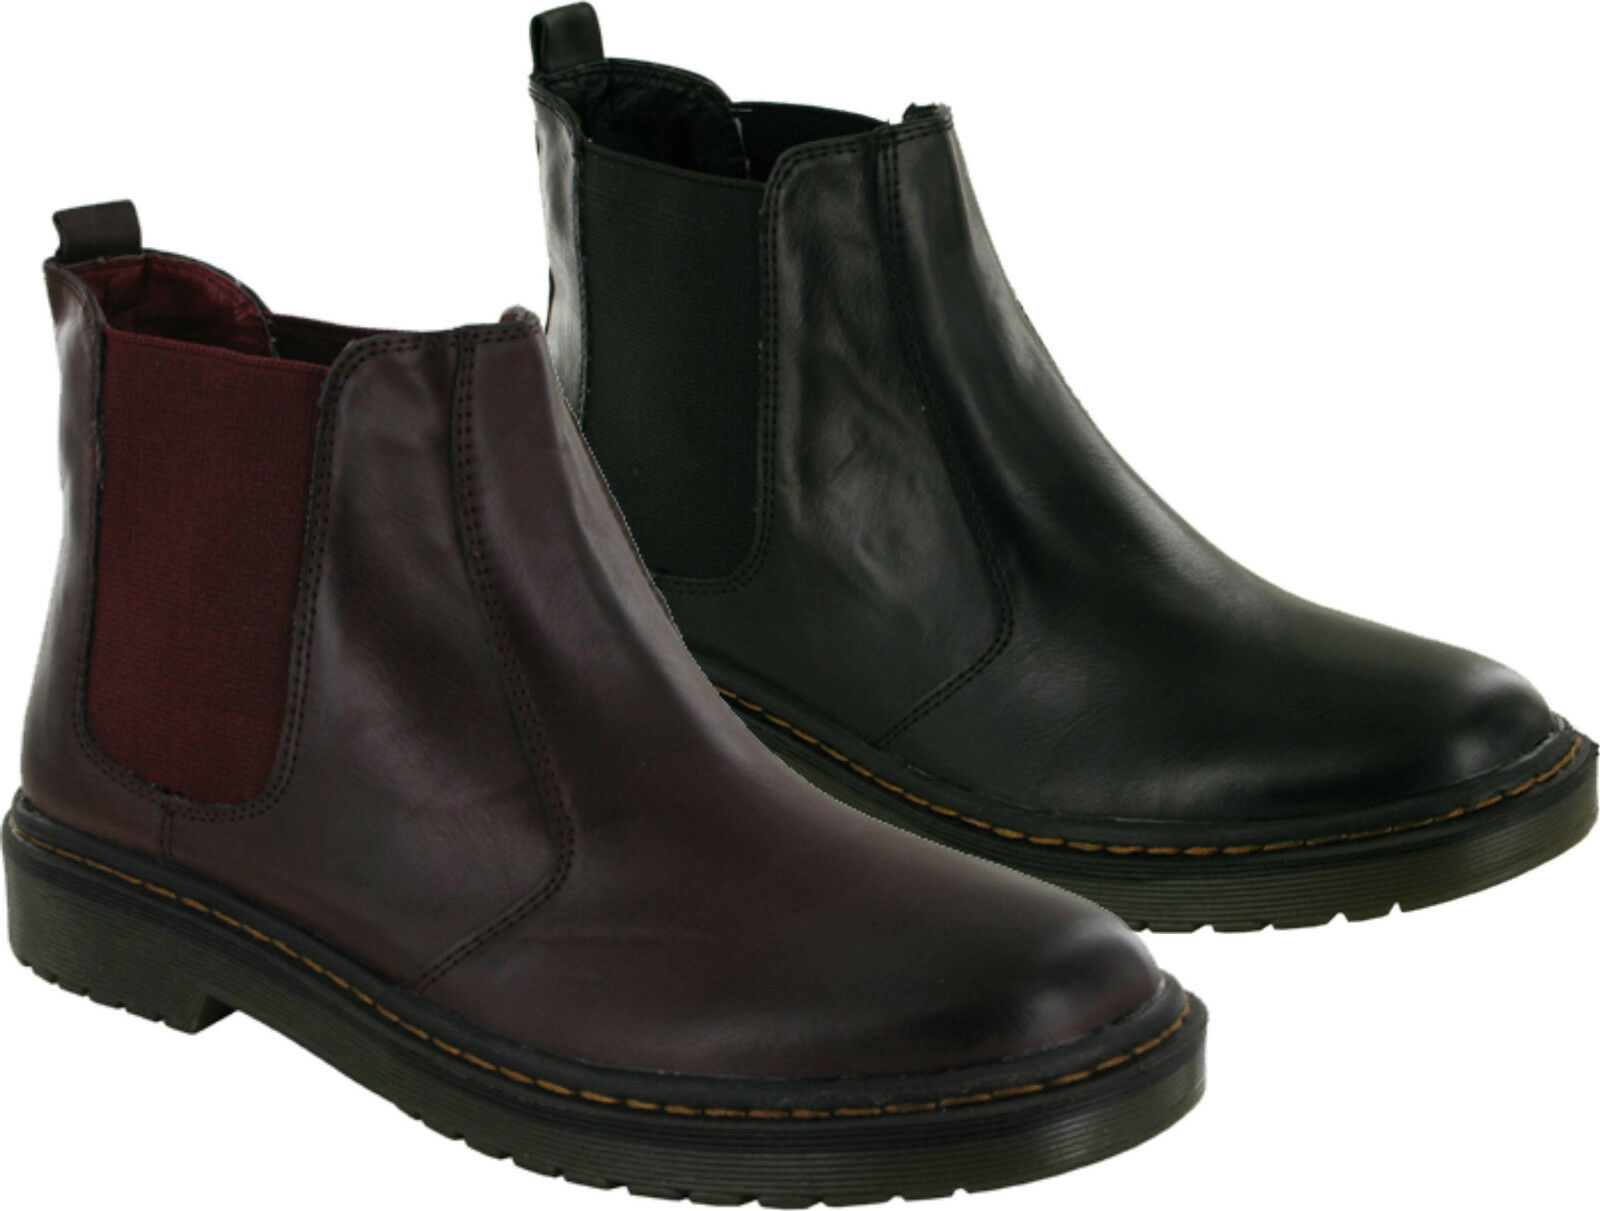 GIRLS LOW HEEL ANKLE PULL ON SMART & ZIP CAUSAL WINTER SMART ON COMFORTABLE SHOES BOOTS c46235